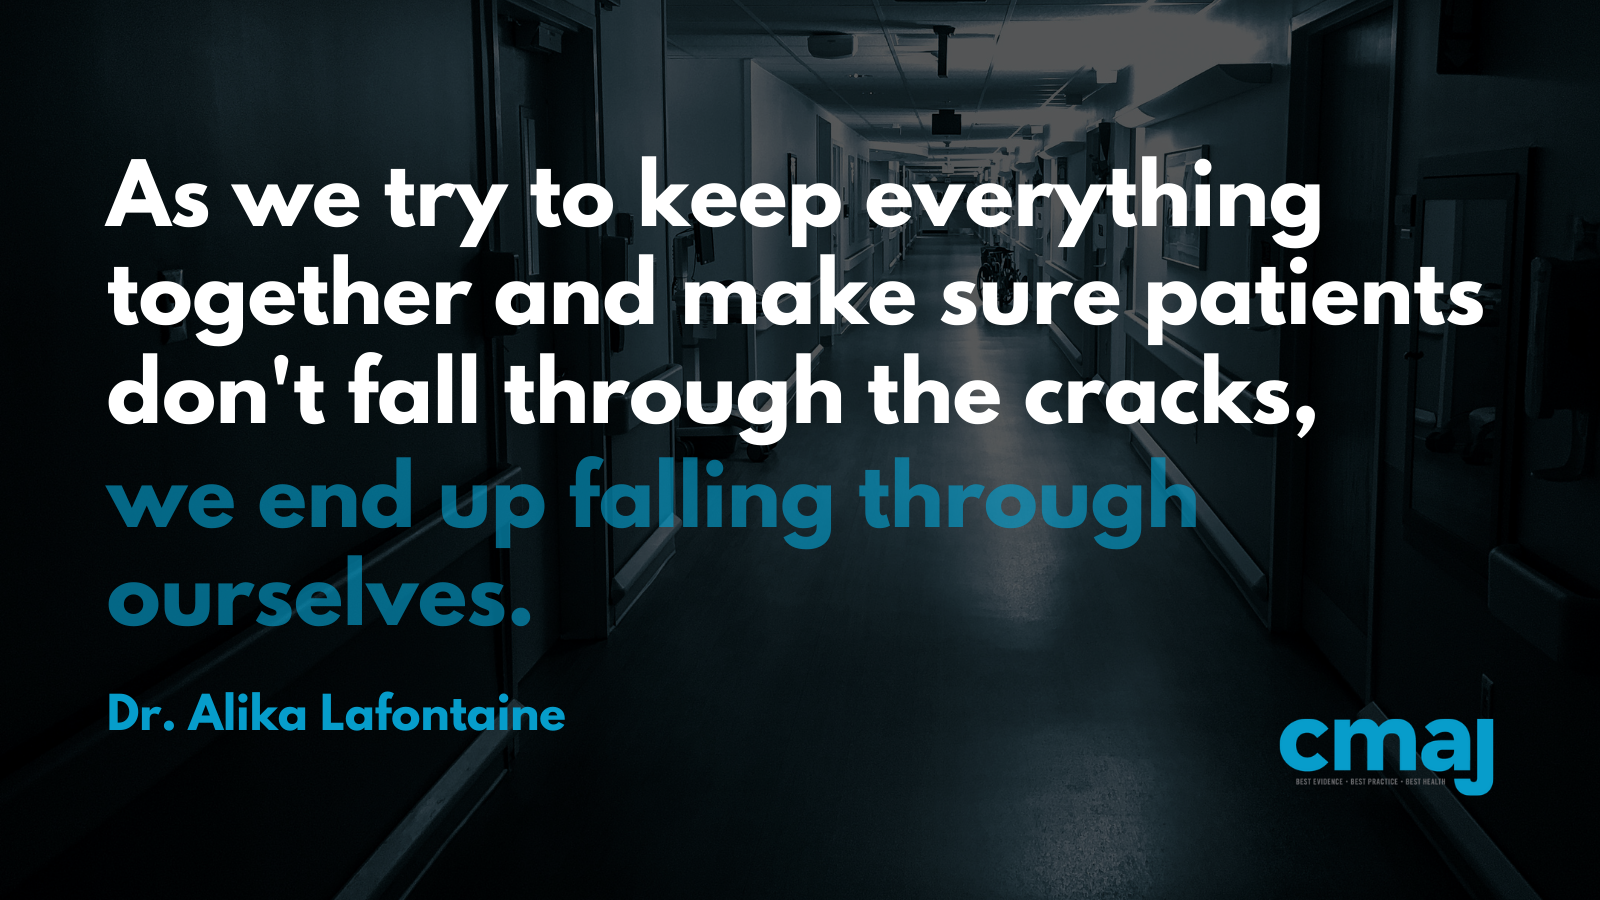 """Graphic of Dr. Alika Lafontaine's quote: """"As we try to keep everything together and make sure patients don't fall through the cracks"""